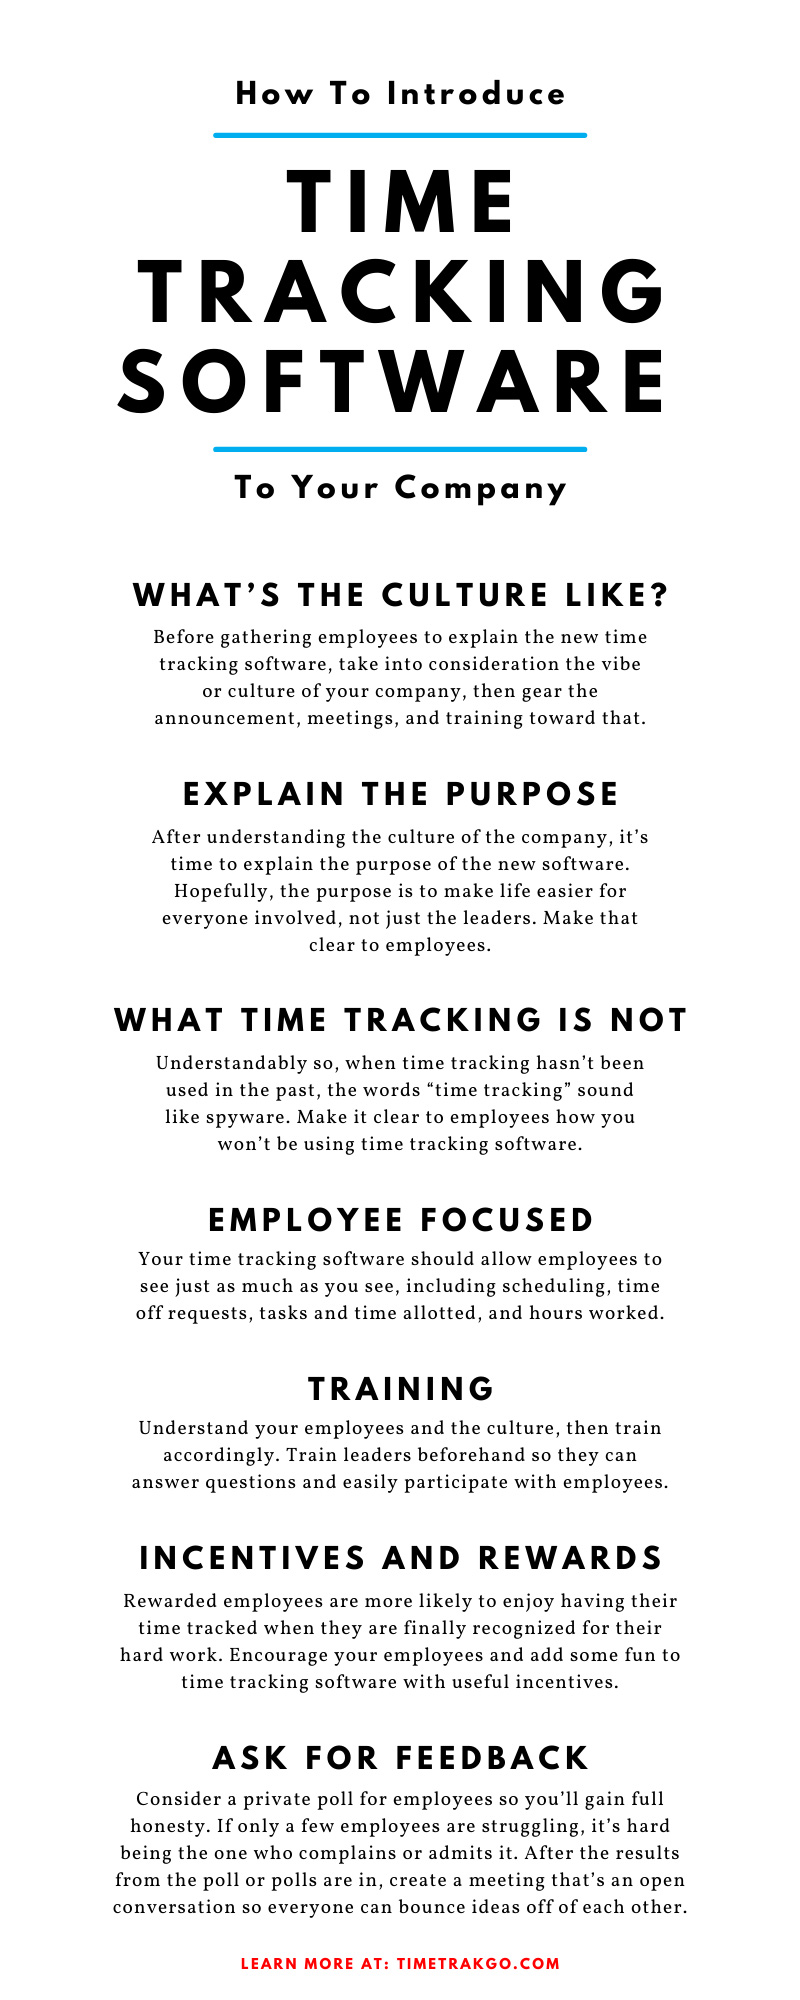 How To Introduce Time Tracking Software To Your Company